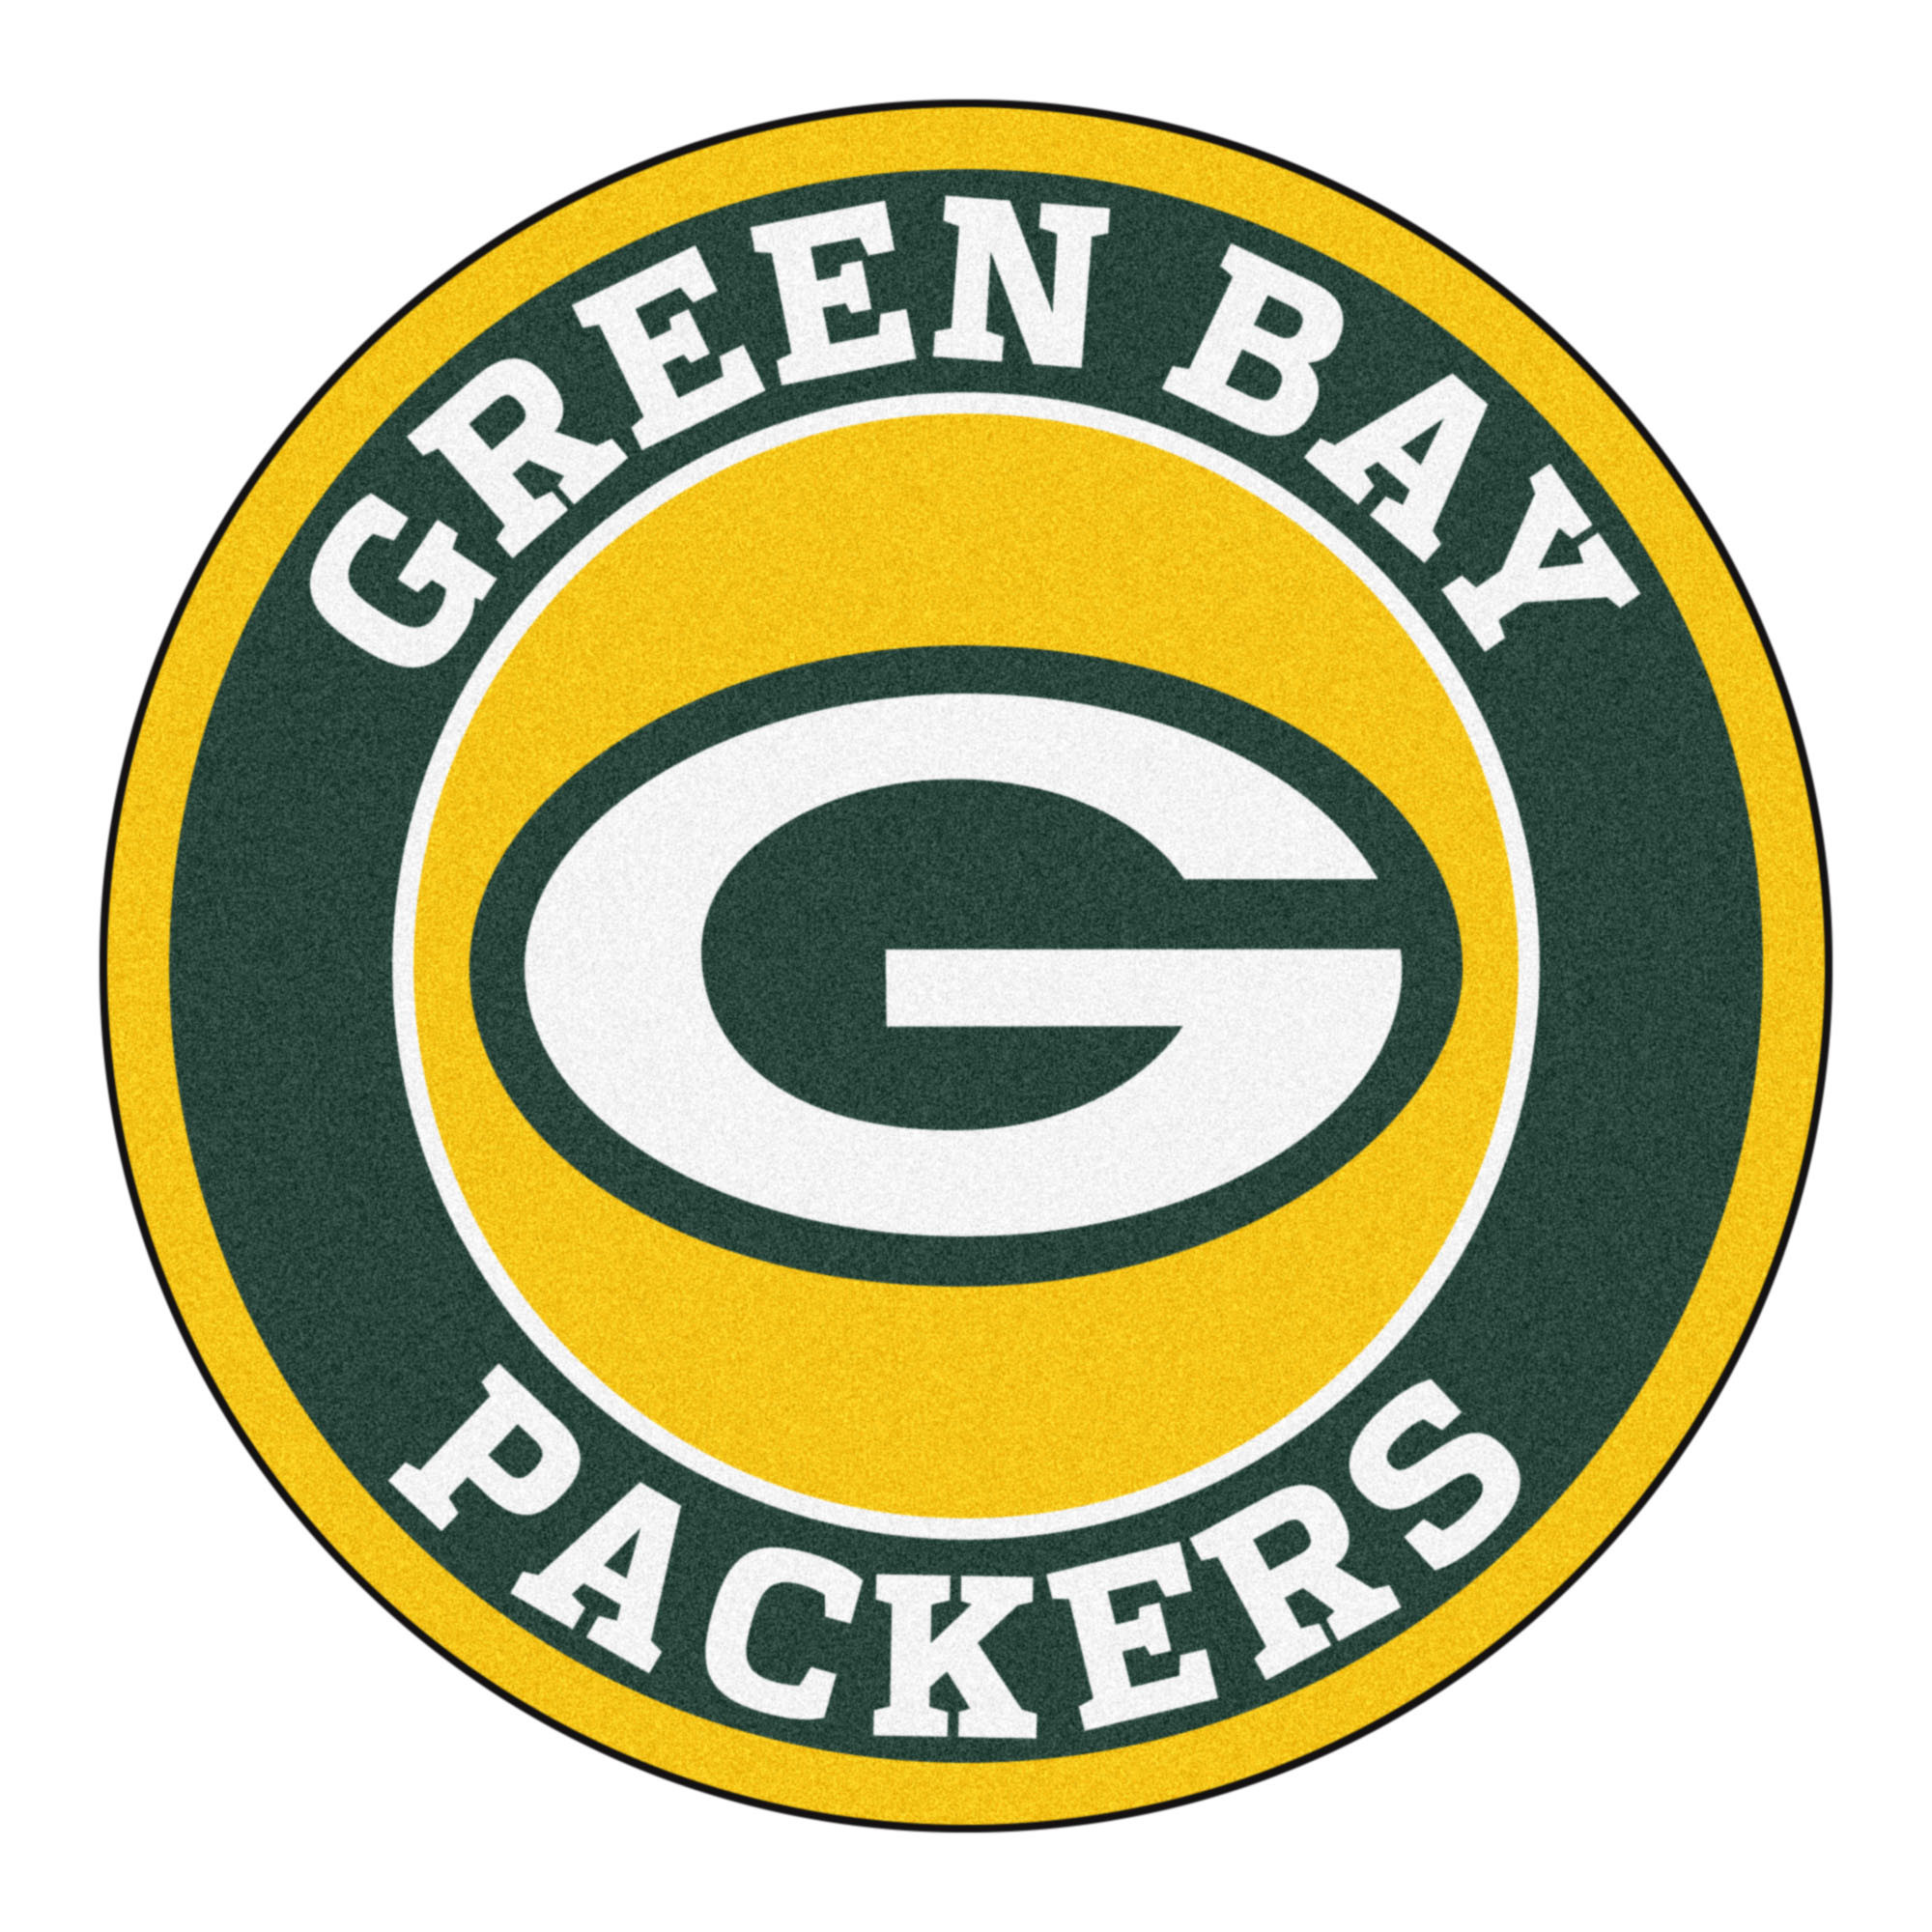 Green Bay Packers Images Wallpaper Logo (64+ images).